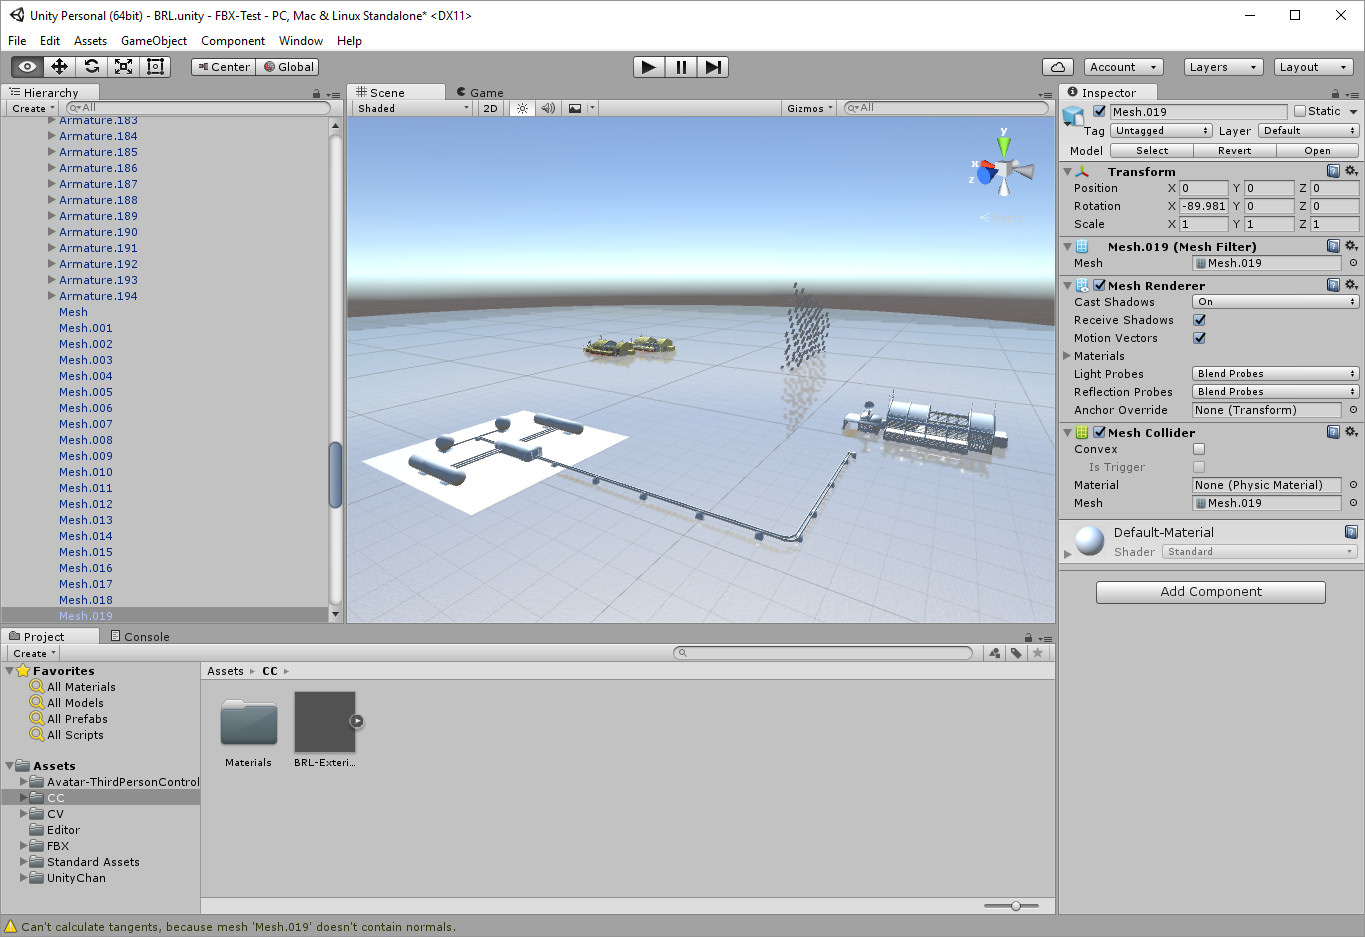 2016-09-23-CC-X-Plane-Model-to-Blender-to-FBX-to-Unity-Tests-2